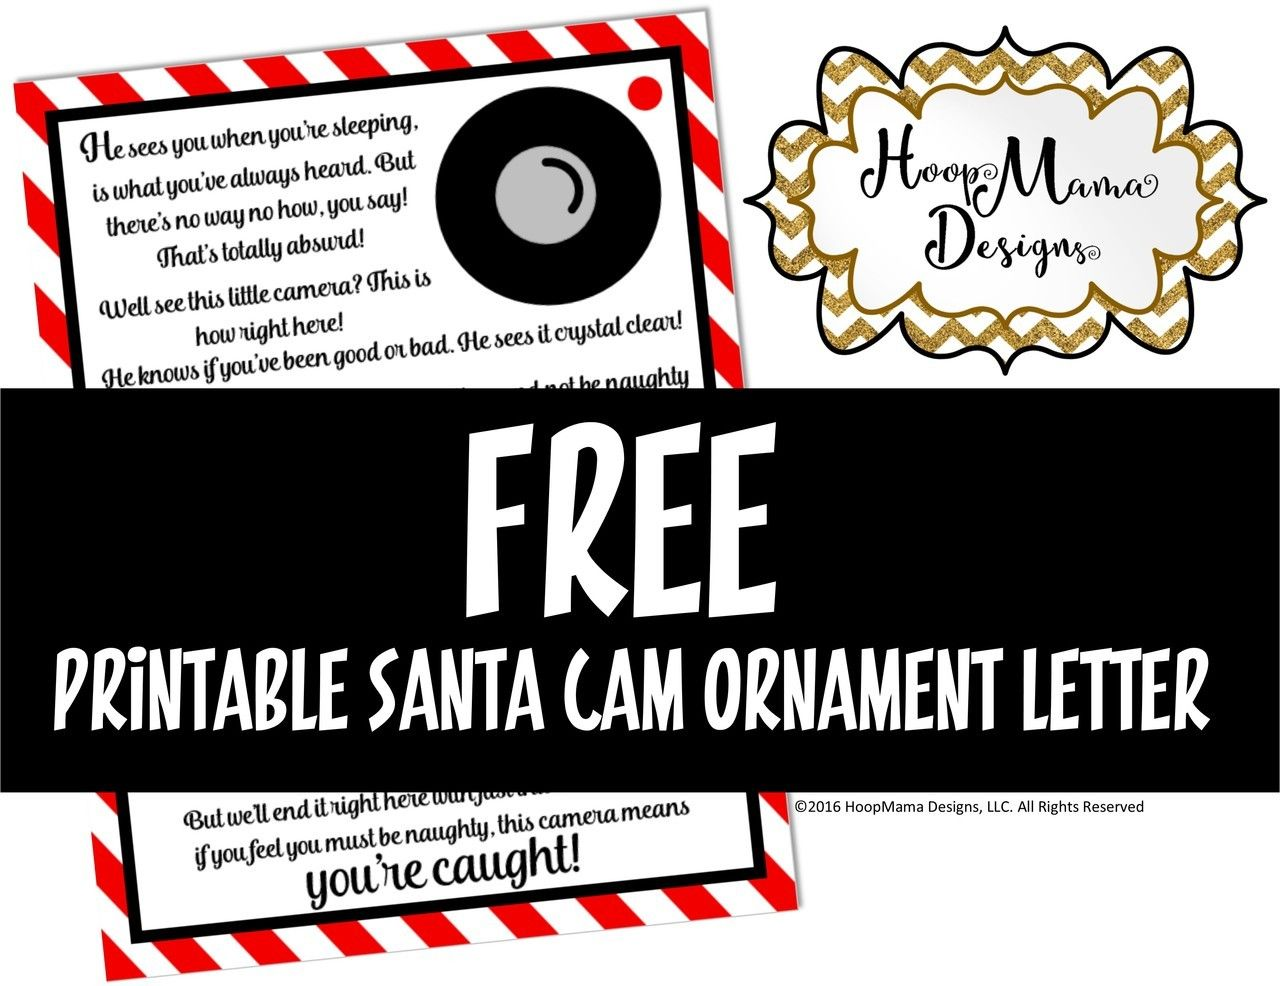 Hoopmama Designs Llc  Free Printable Santa Cam Letter  Pdf File